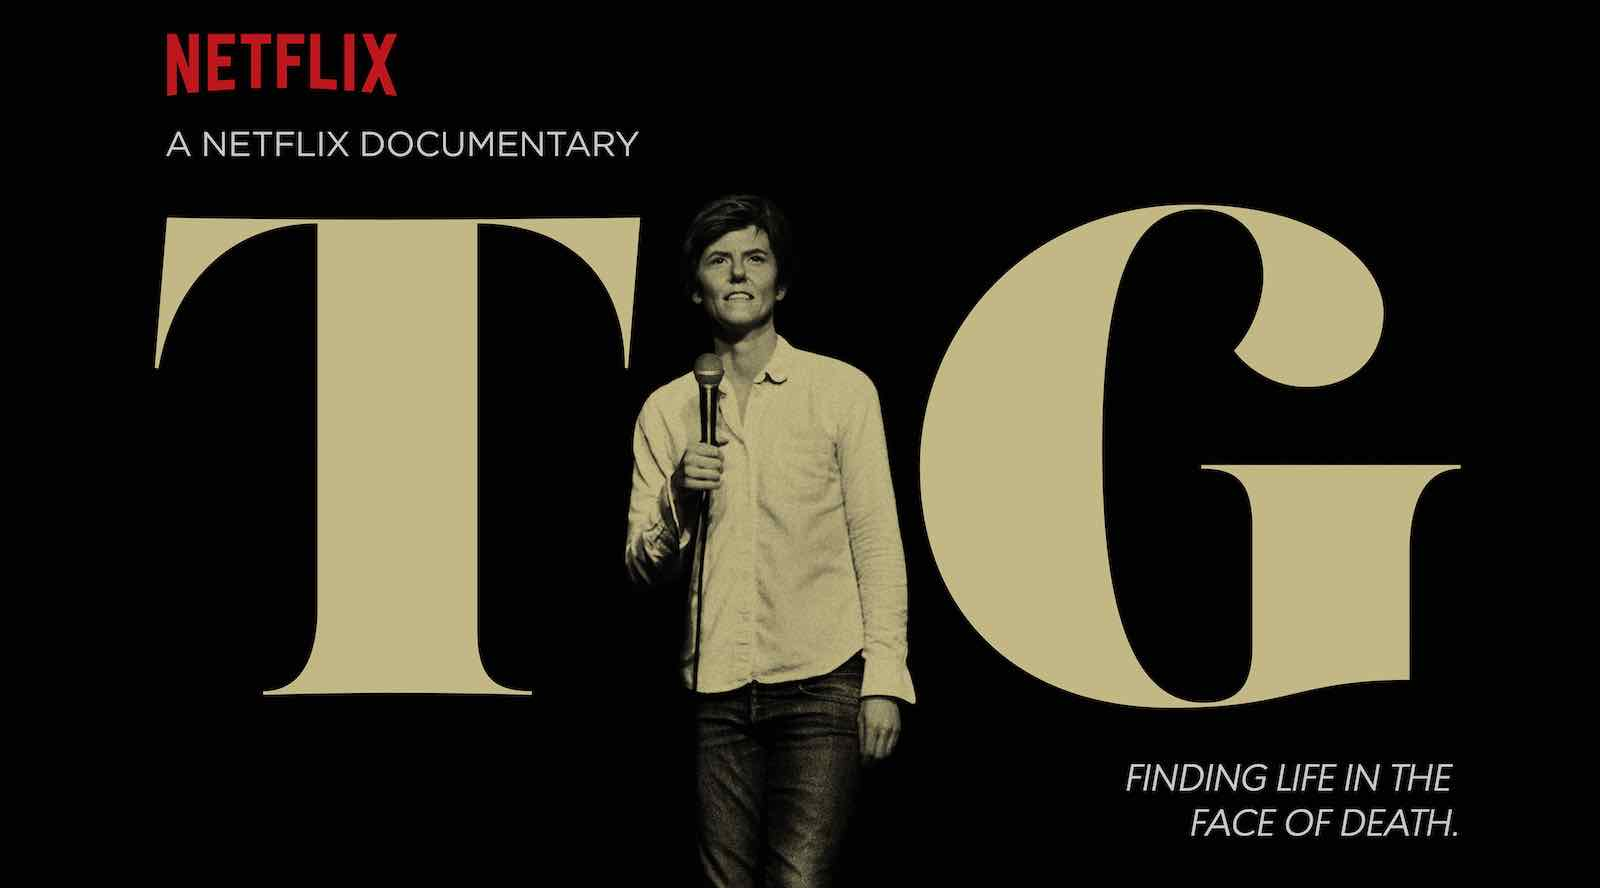 Netflix Originals Documentaries That Will Make You Cry Film Daily